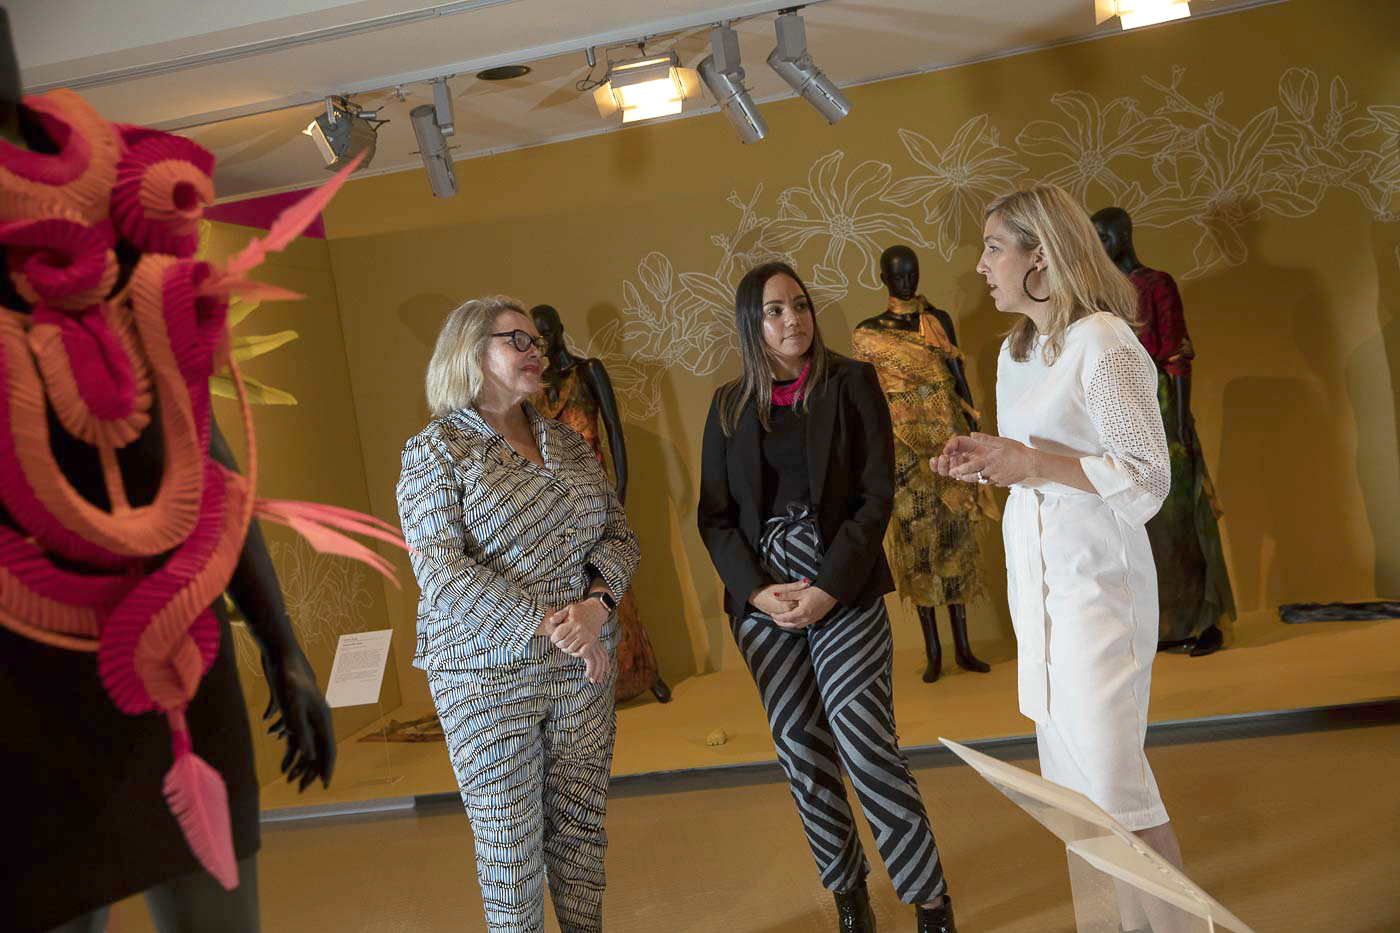 Three women are in discussion in an exhibition room with fashion clothing and accessories on display. - click to view larger image